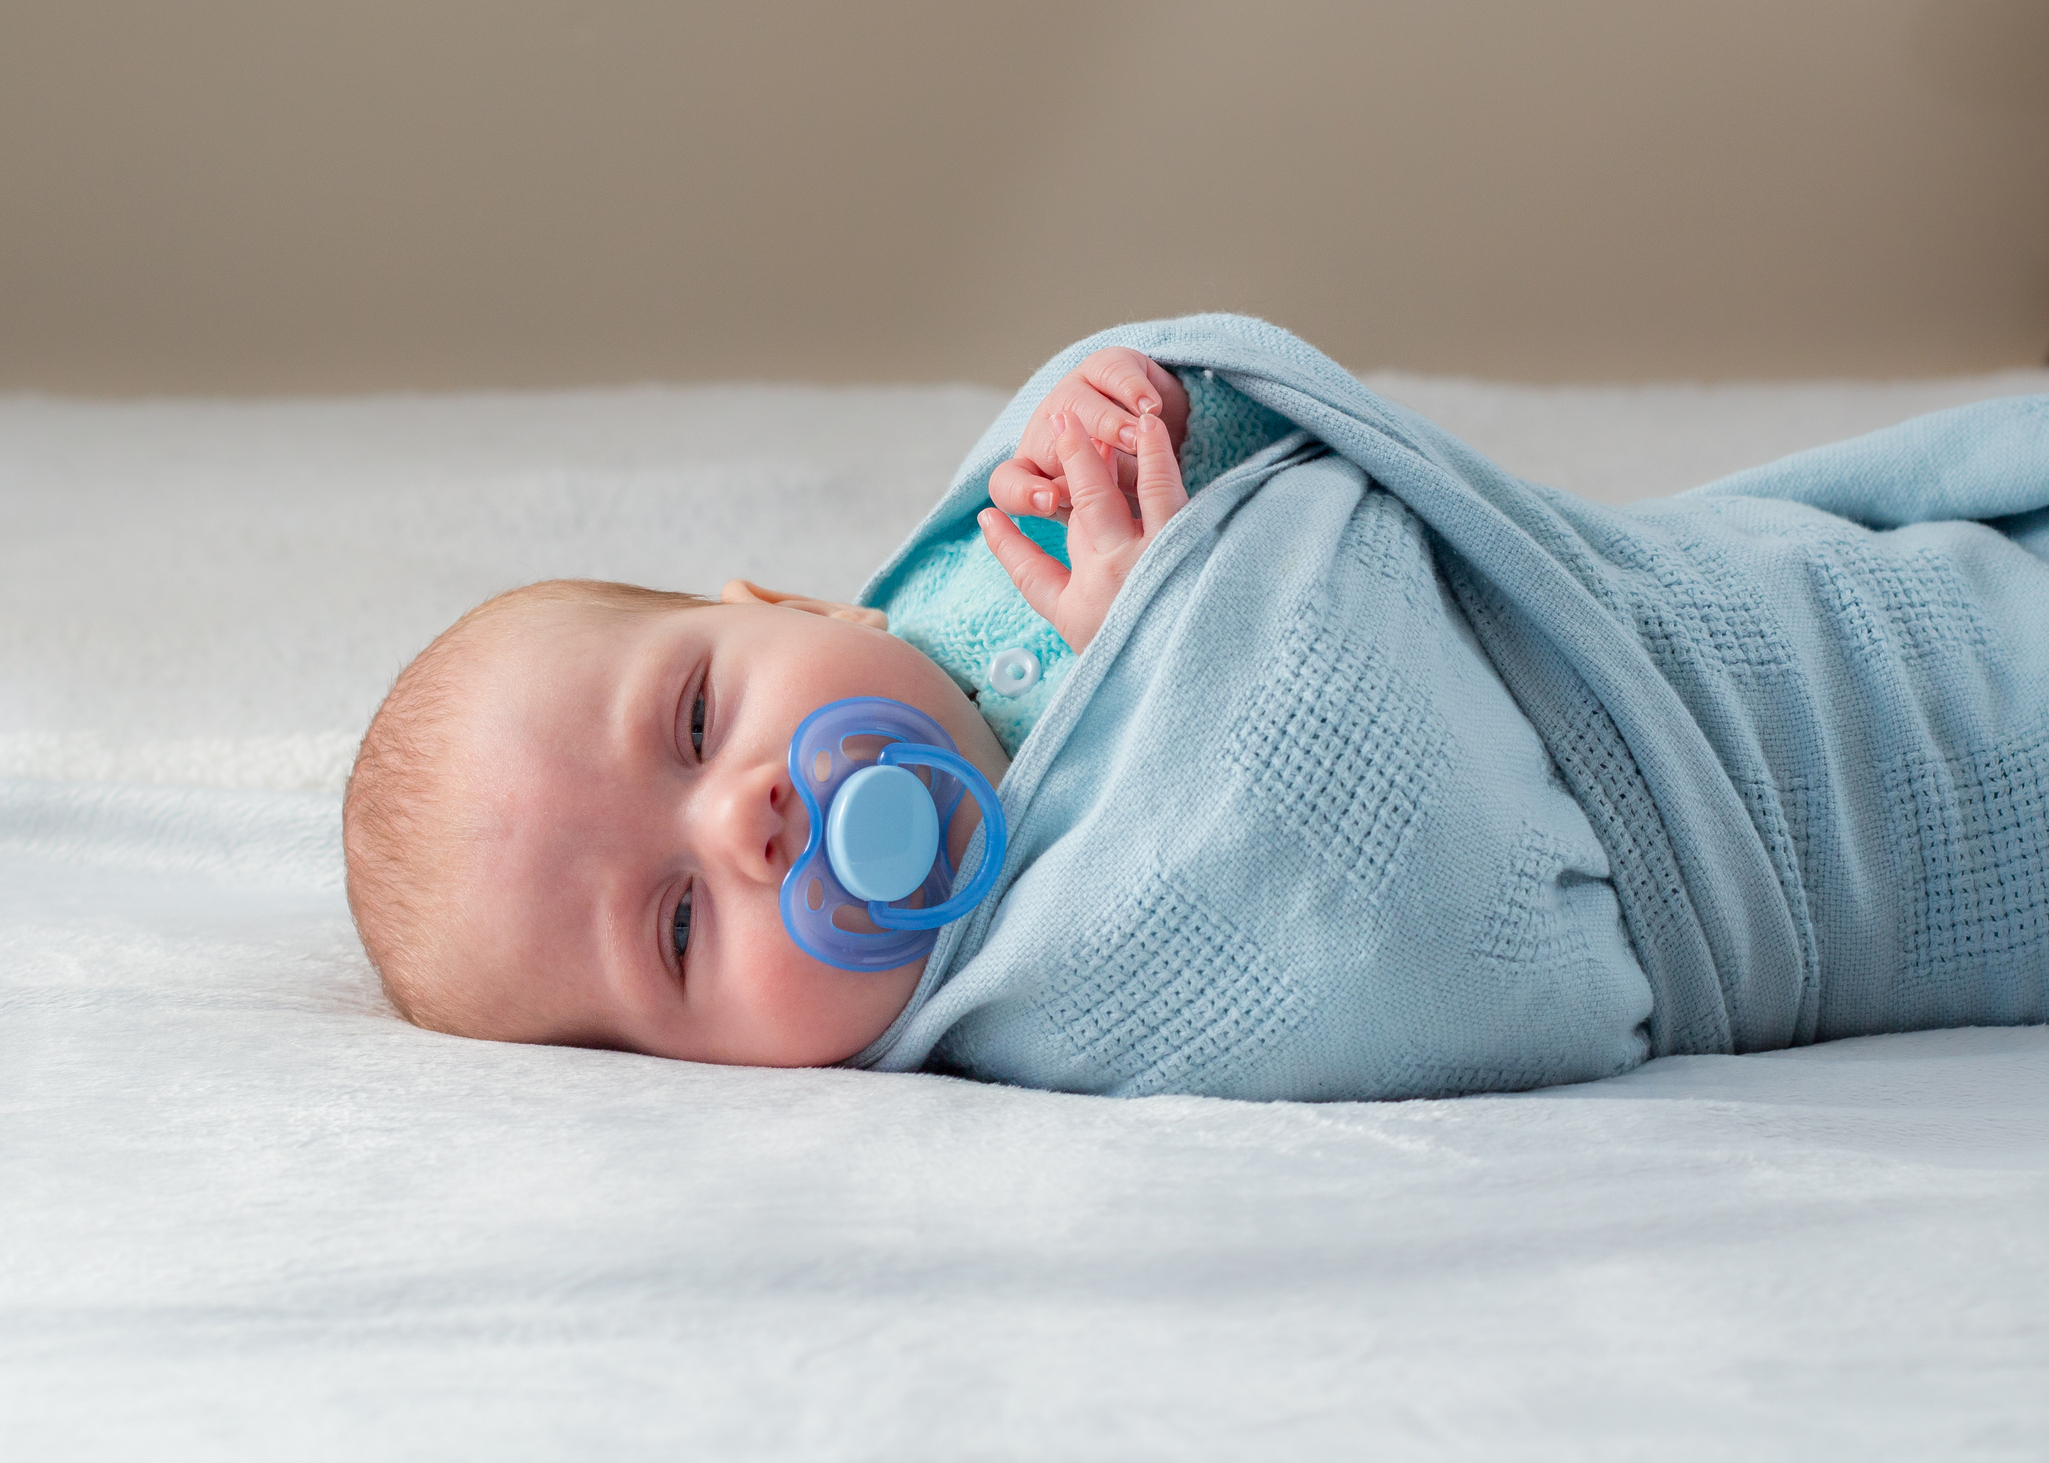 Tight swaddling damages baby's joints